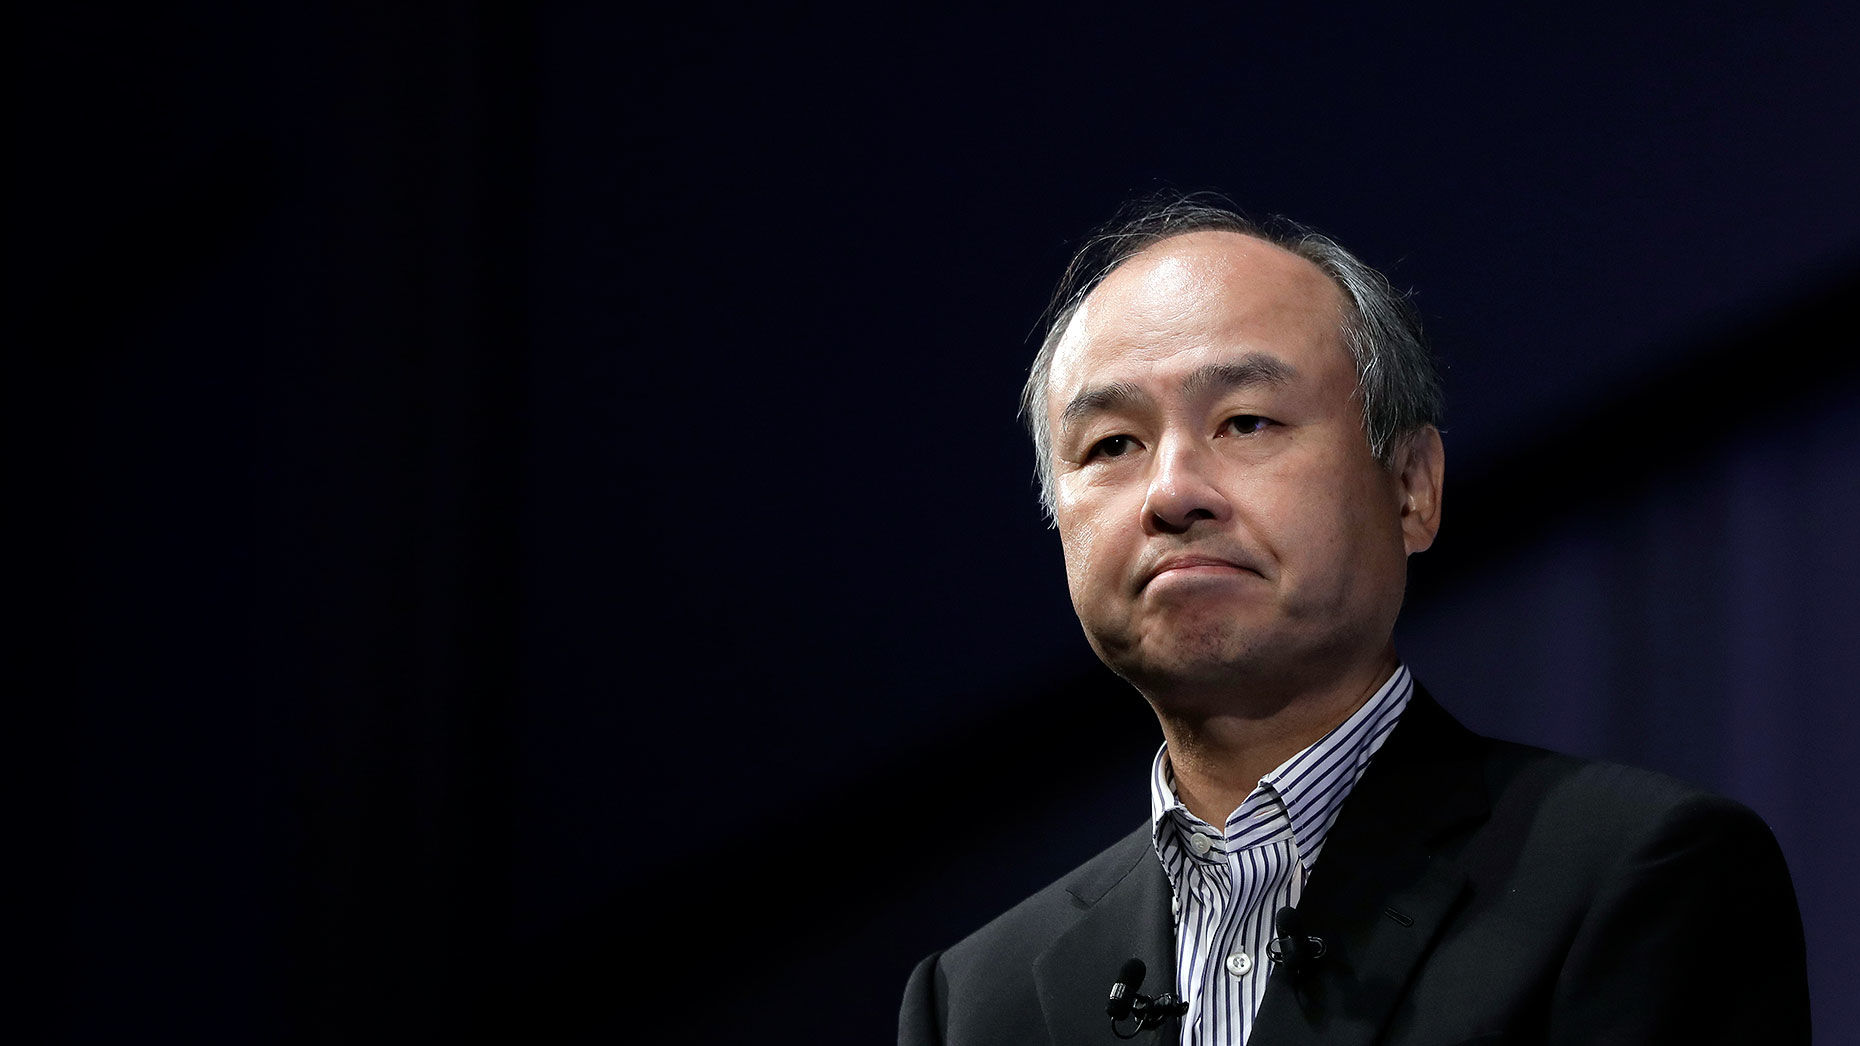 SoftBank Chairman Masayoshi Son. Photo by Bloomberg.